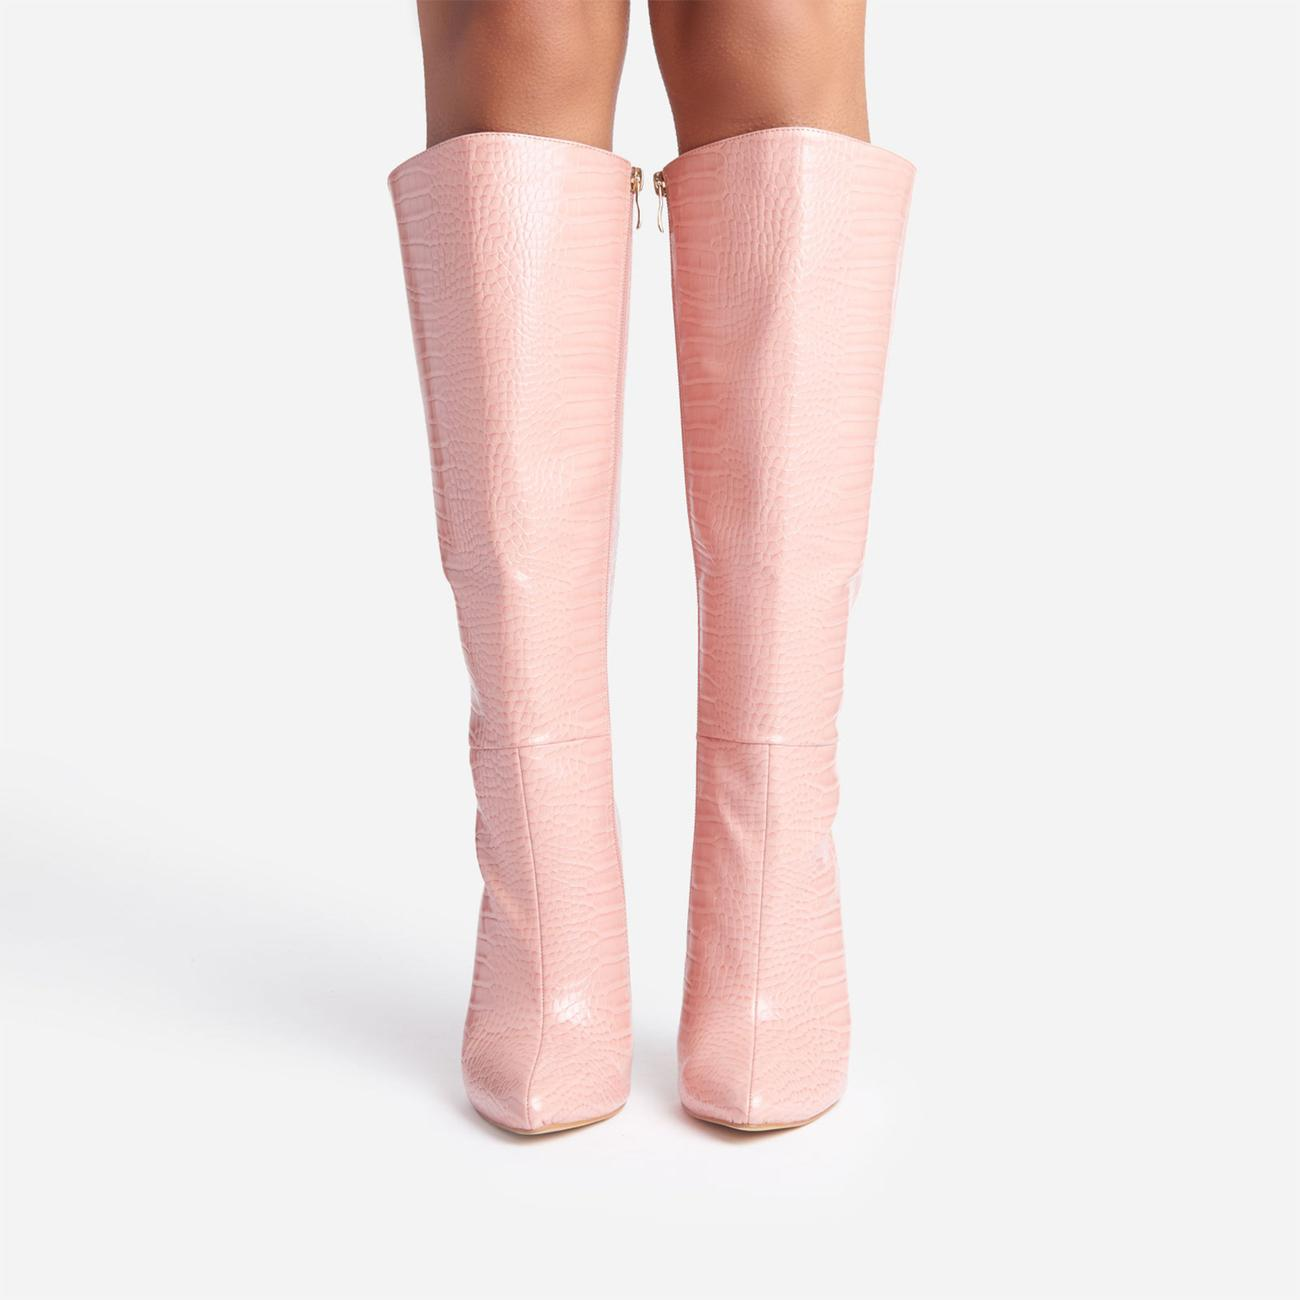 Clarity Metallic Heel Knee High Long Boots In Pink Croc Print Faux Leather Image 4